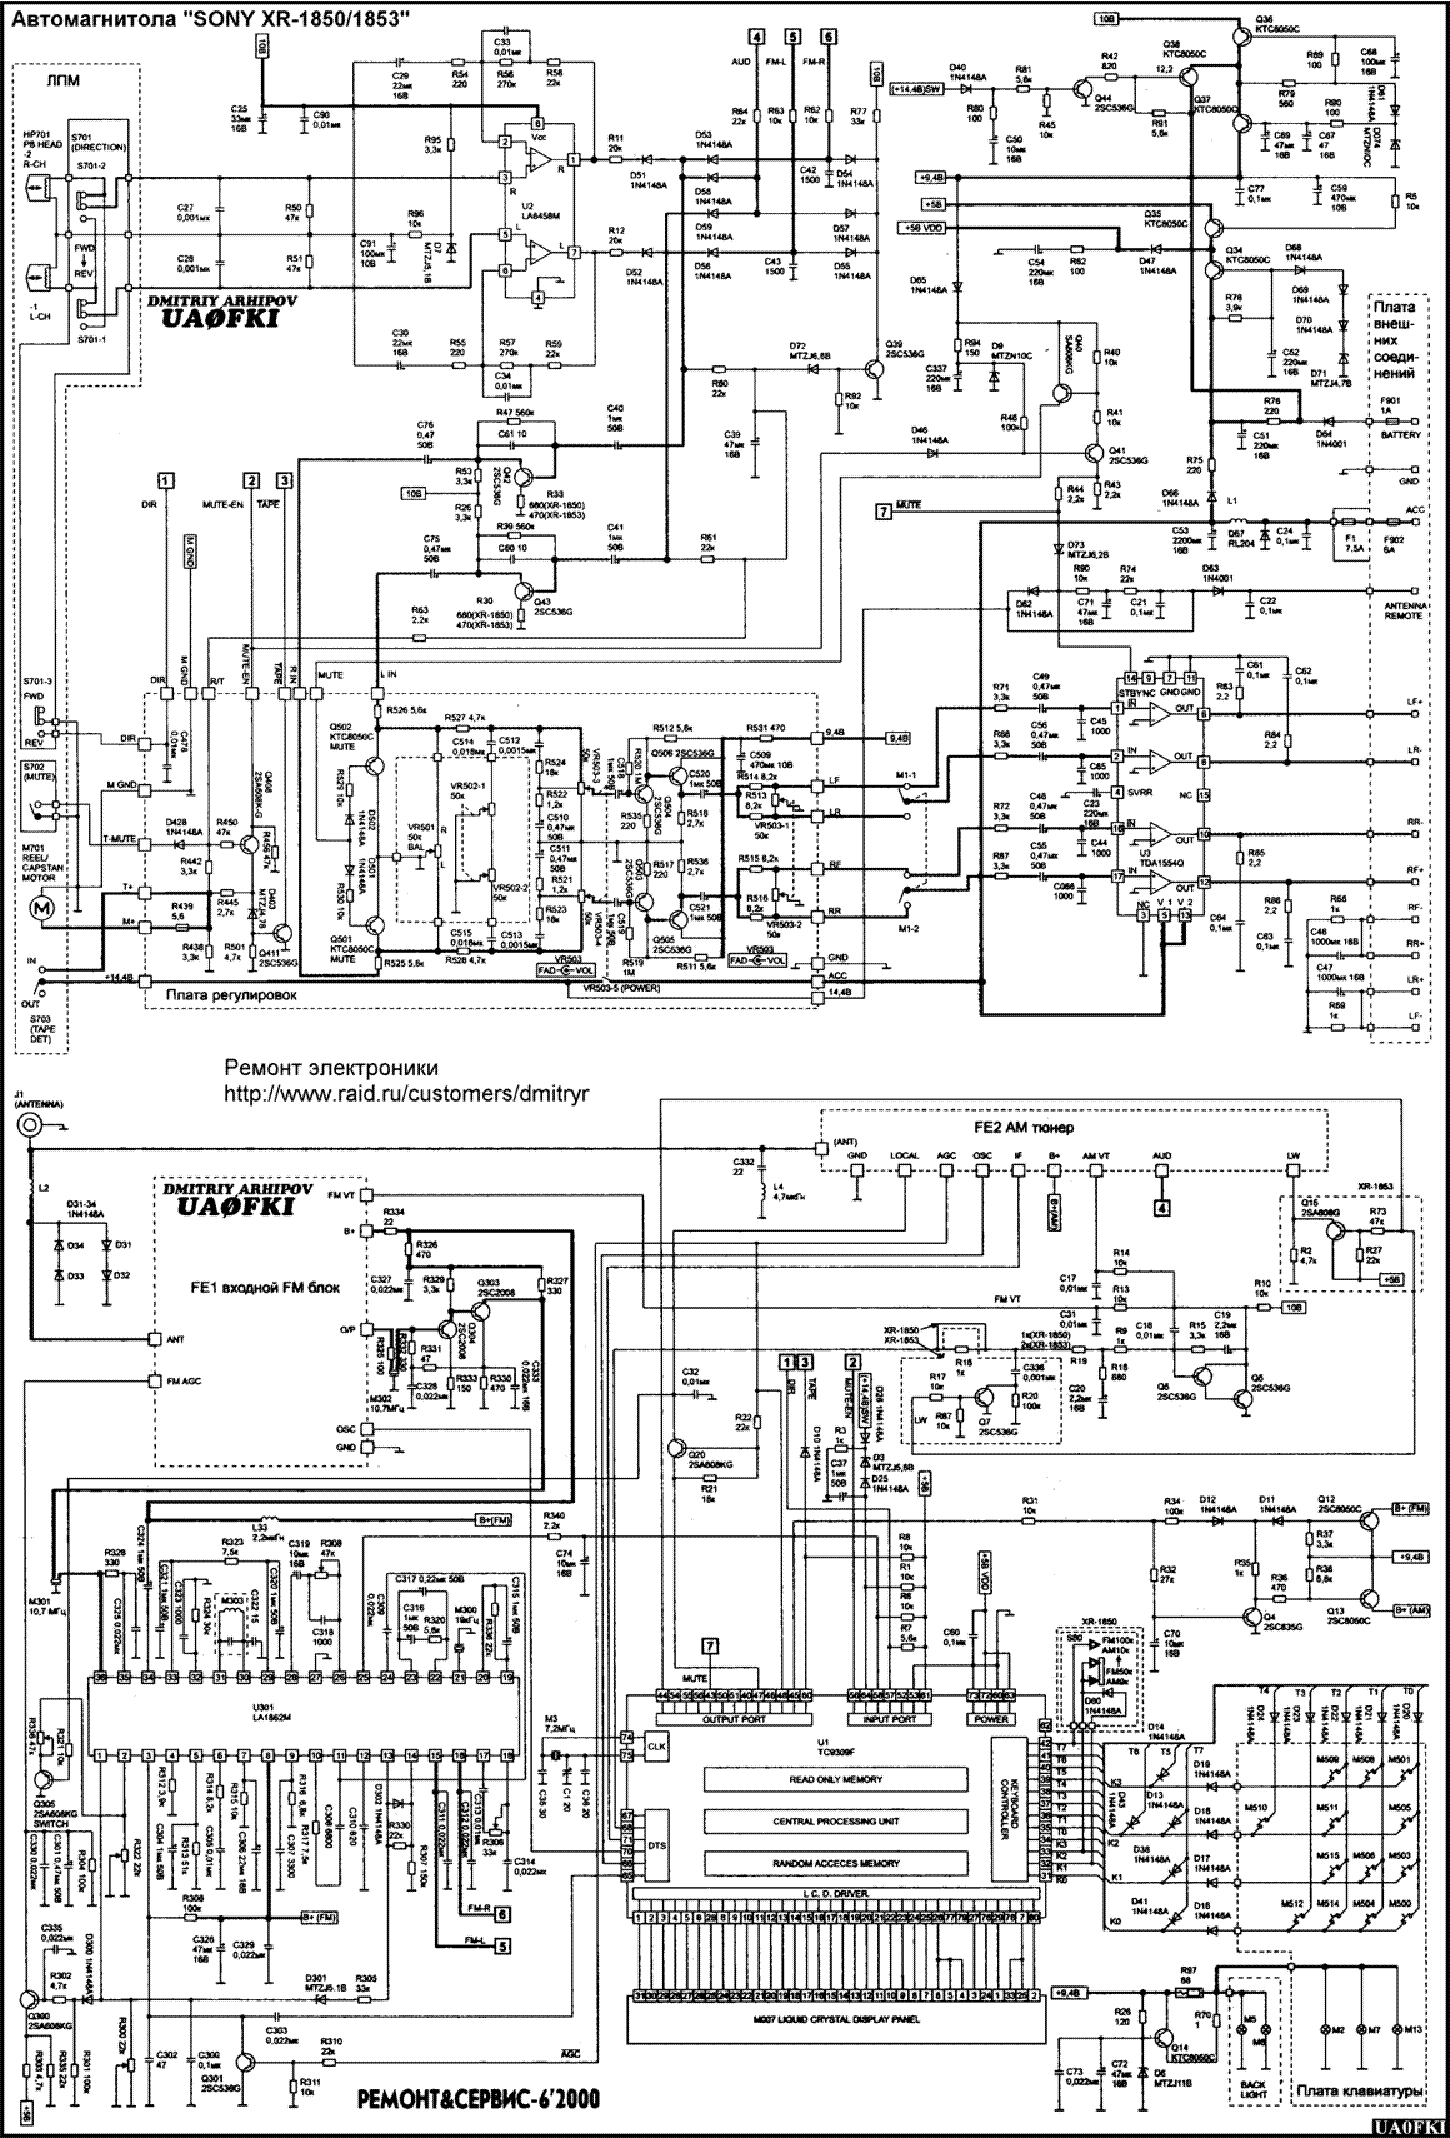 Sony Explode Wiring Harness. Diagram. Wiring Diagram Images